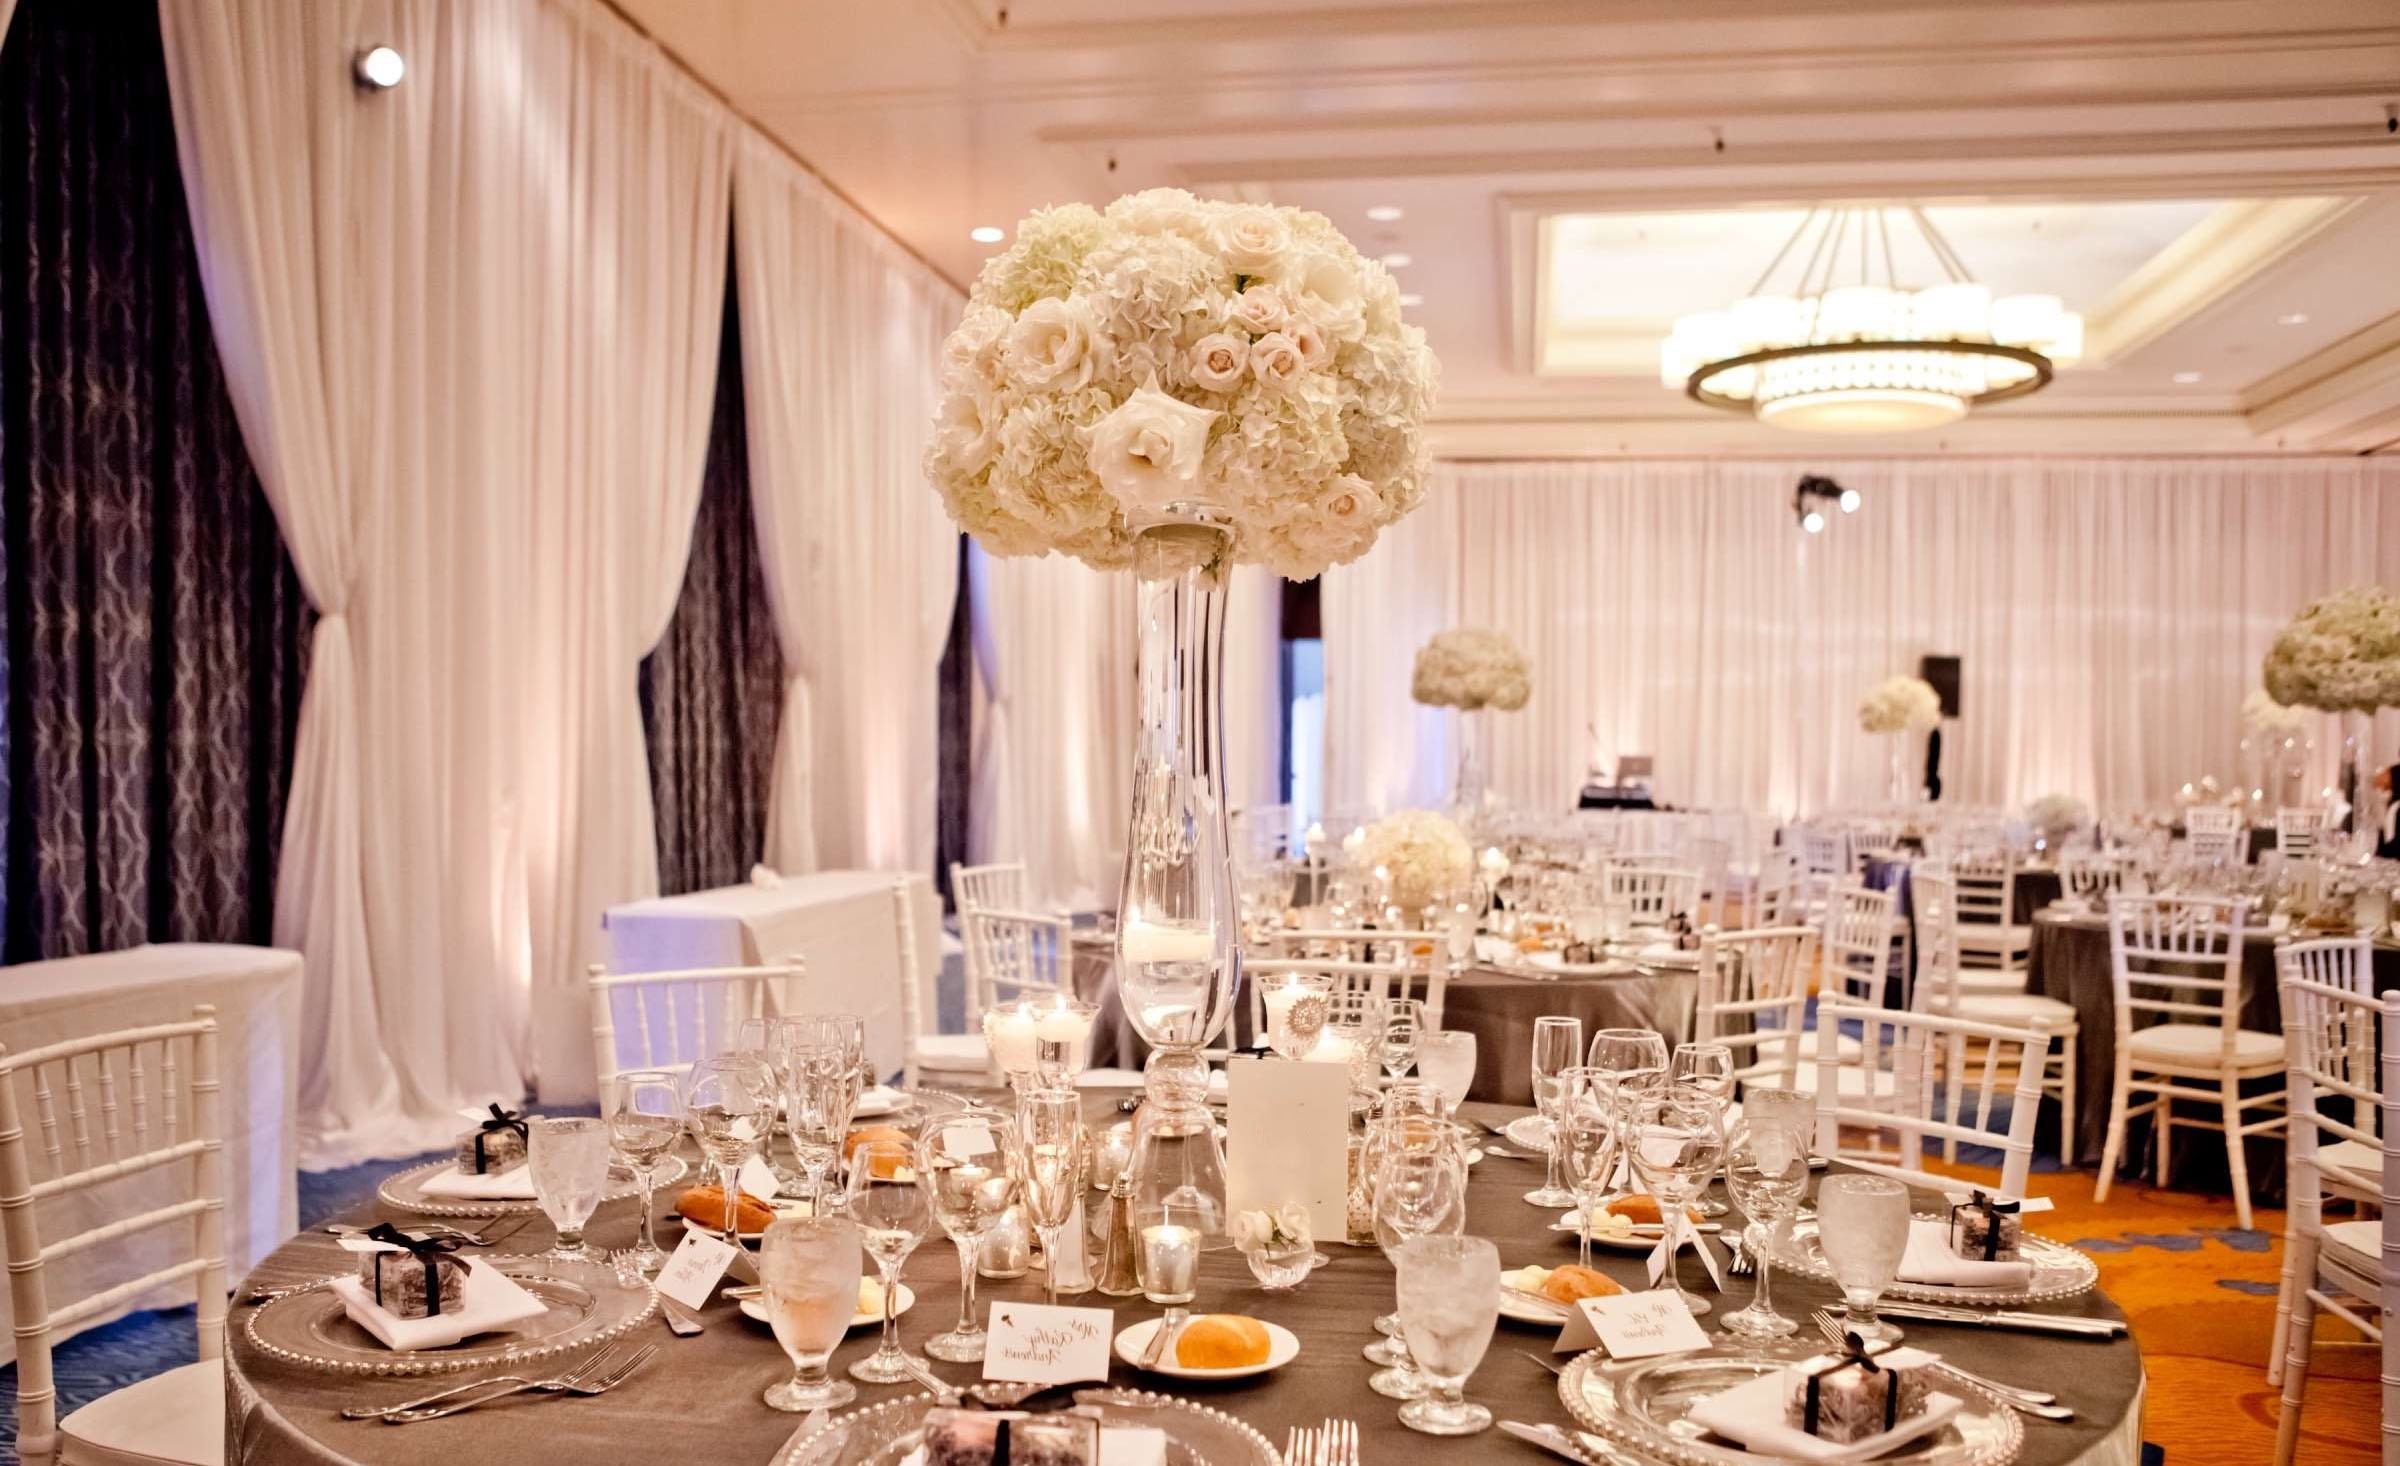 Luxury Tall Flower Arrangements Centerpieces (Image 11 of 30)